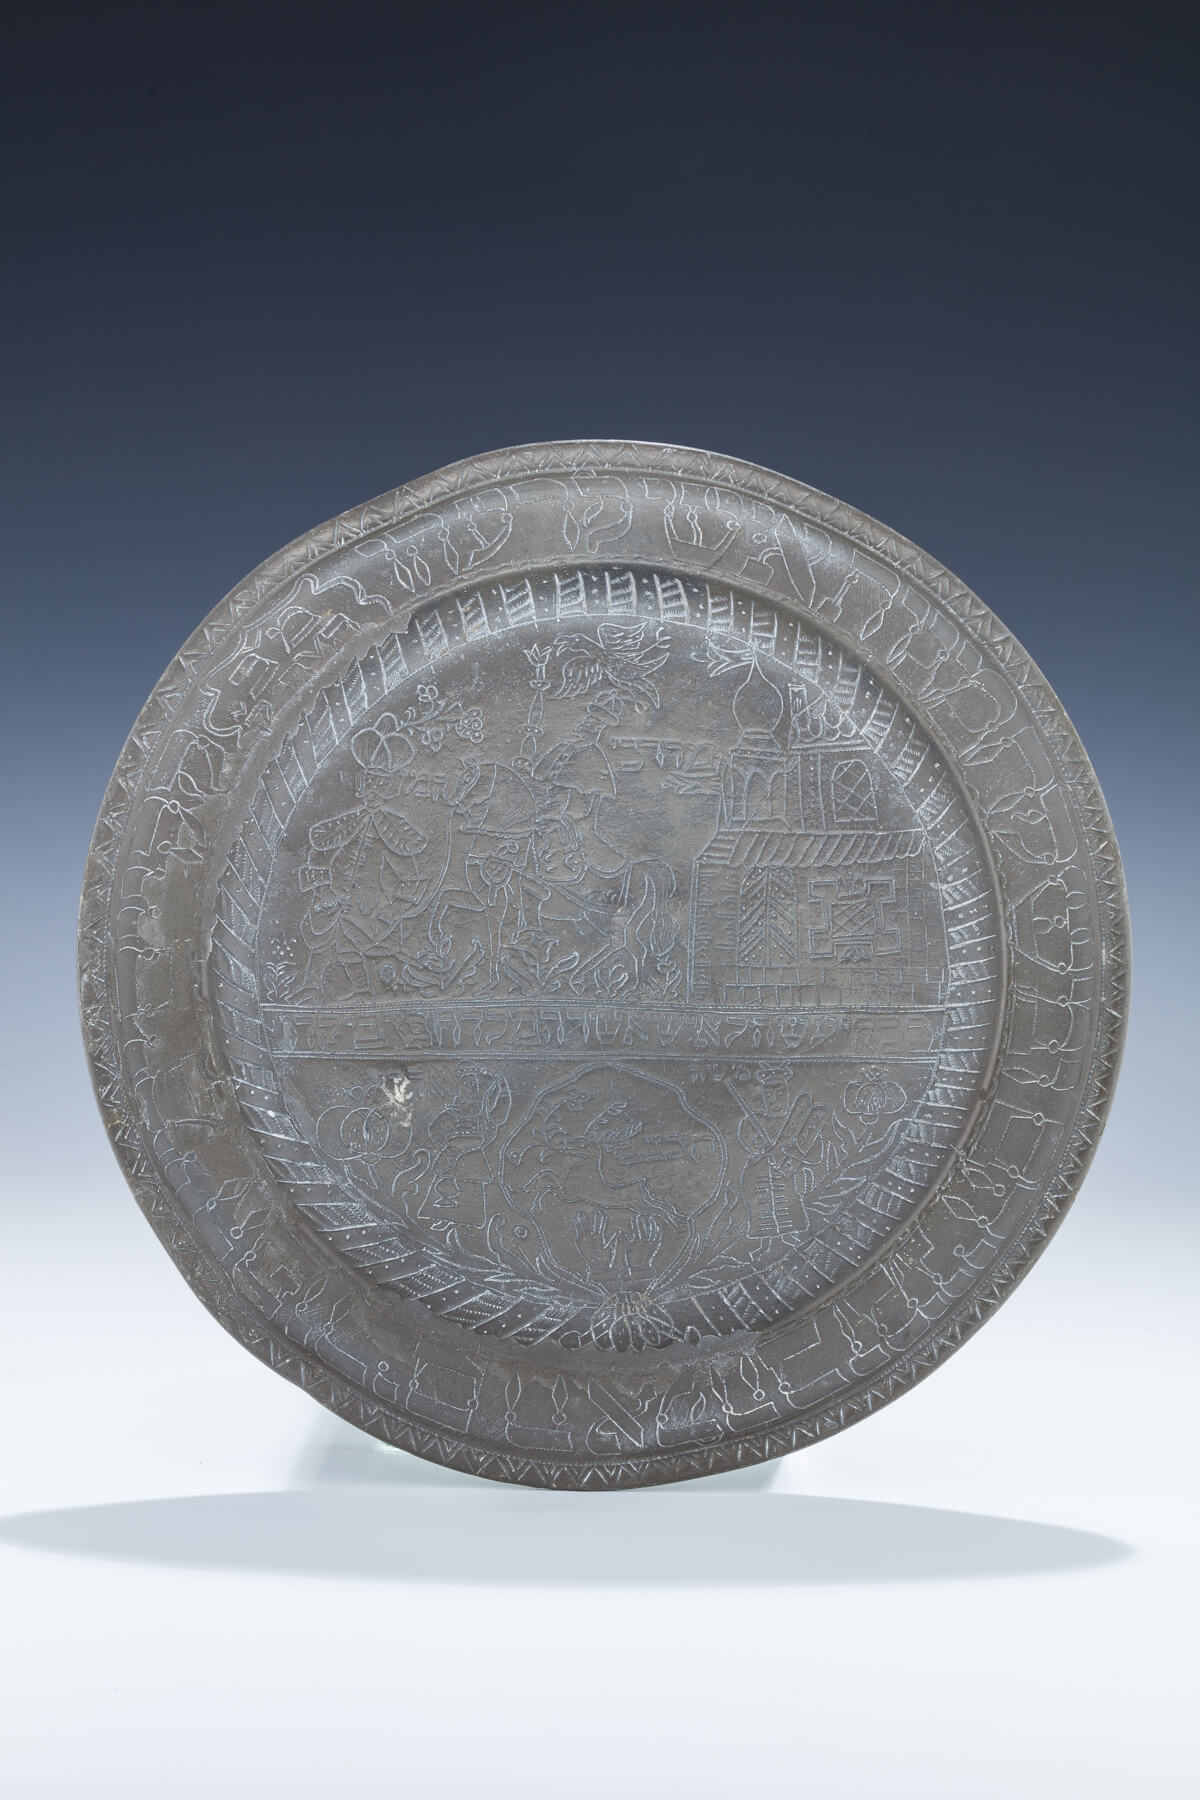 105. An Early Pewter Purim Plate